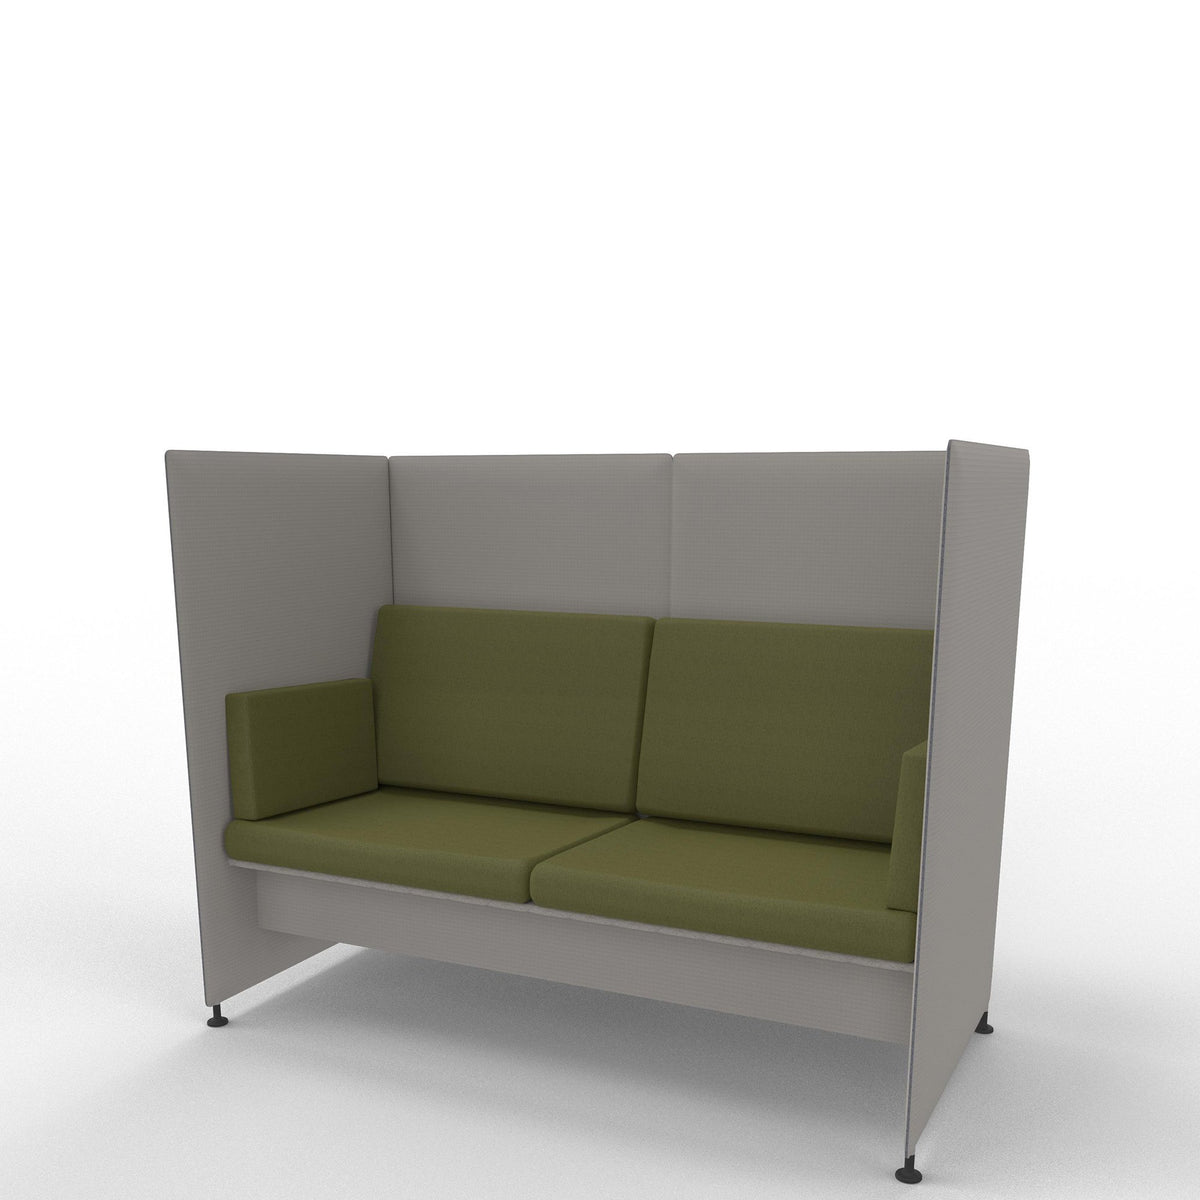 Edsbyn Ease Sofa Pod with Olive Cushions